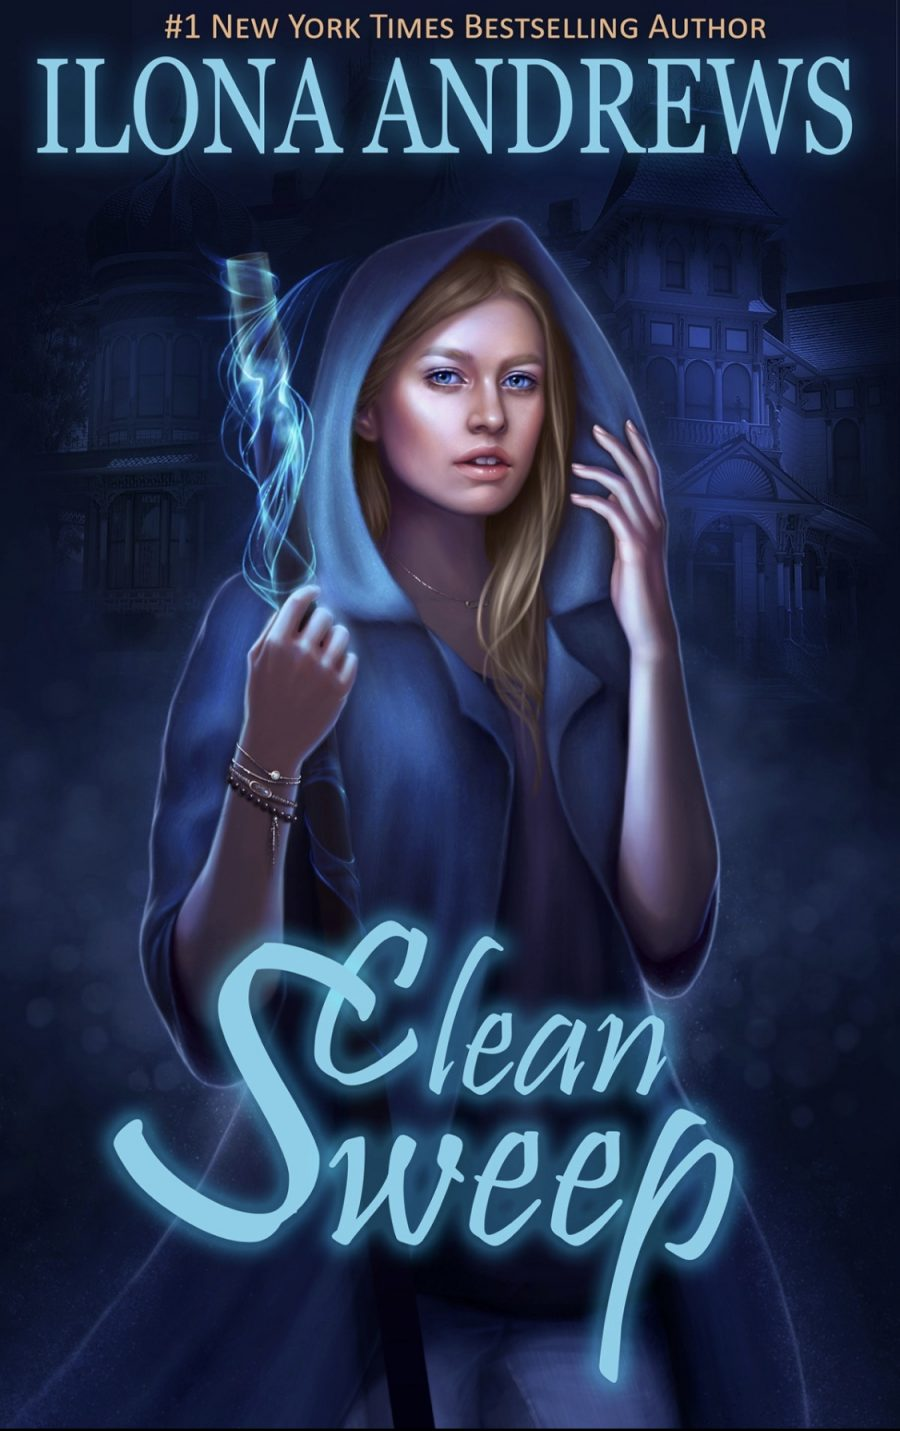 Clean Sweep (Innkeeper Chronicle's - Book 1) by Ilona Andrews - A Book Review #BookReview #OlderRelease #ThirdPerson #UrbanFantasy #UF #Amazing #5Stars